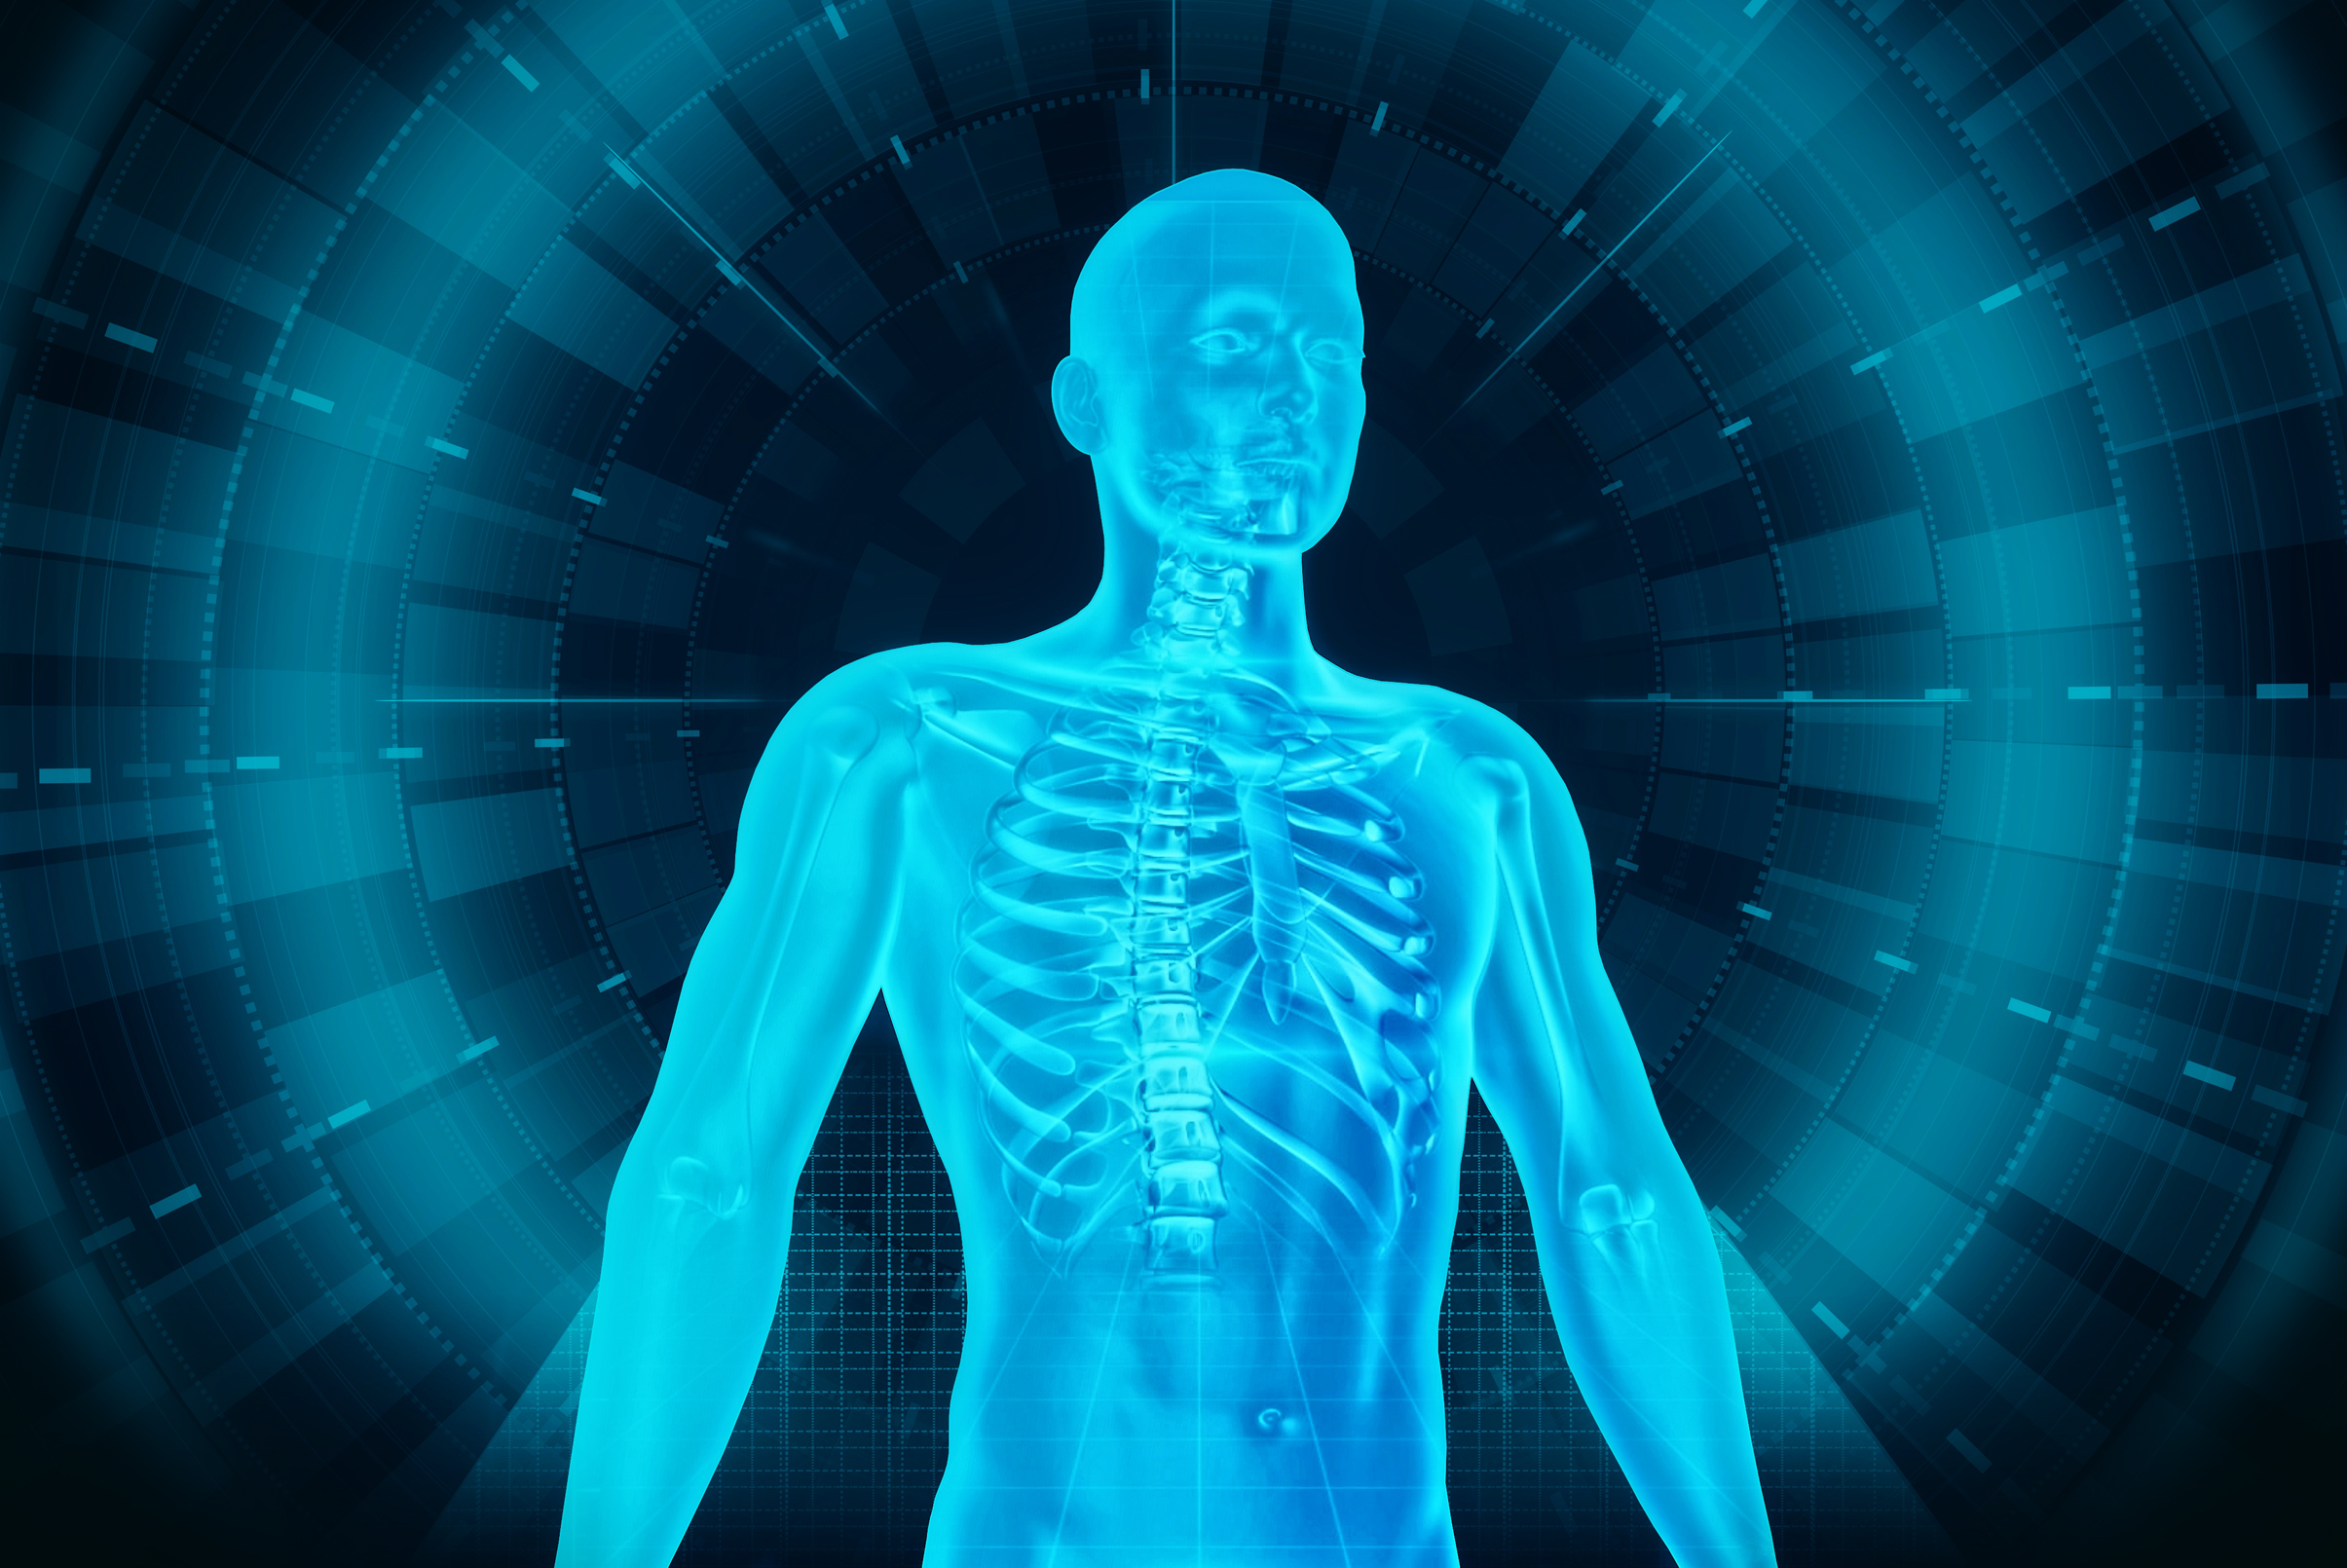 Medical human body scan - man and technology photo